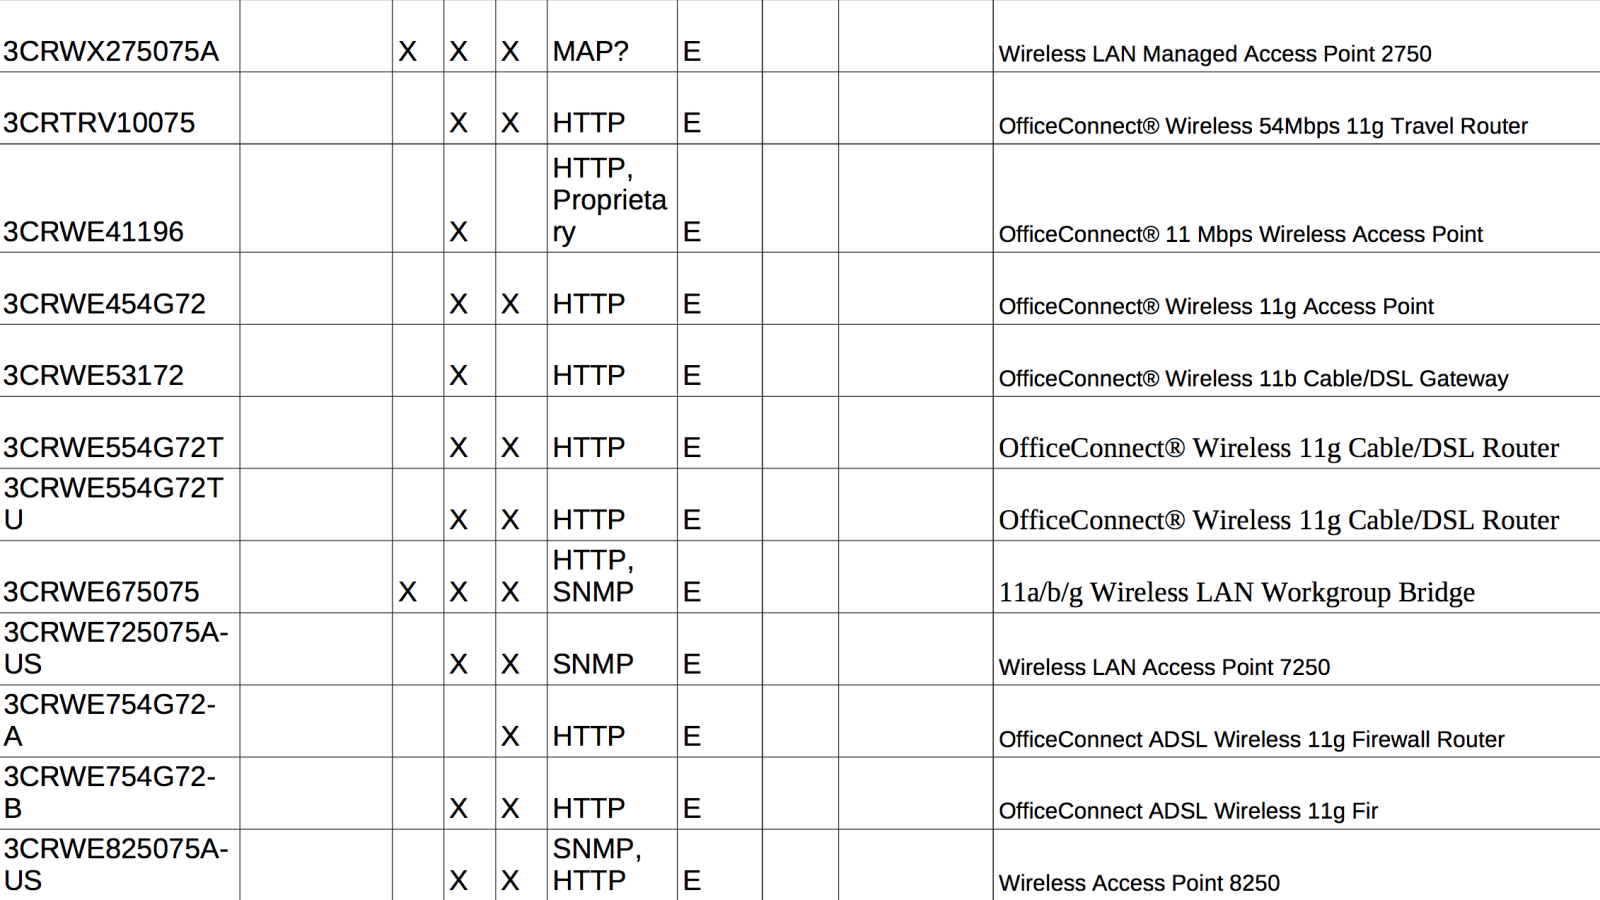 Complete list of wifi routers from WikiLeaks' Cherry Blossom